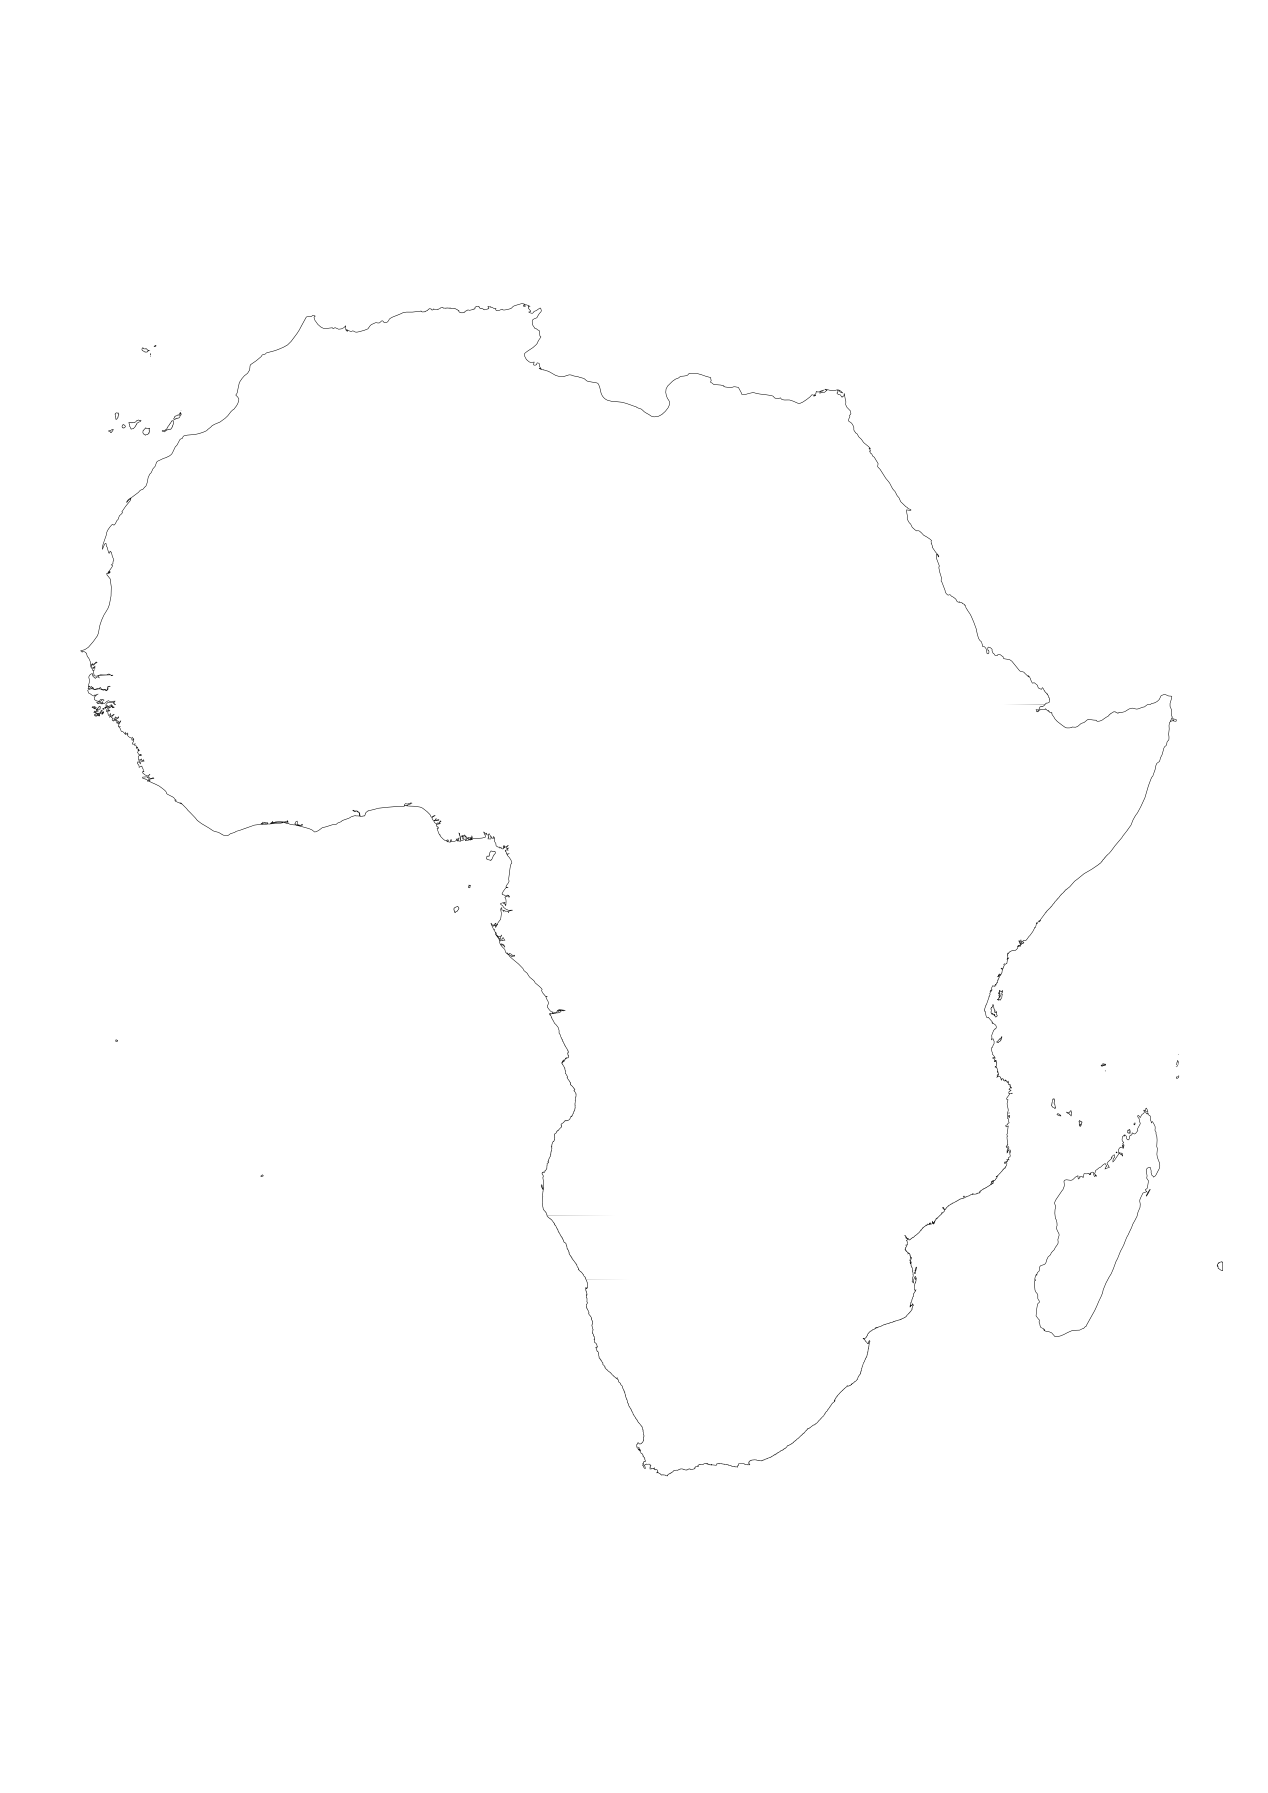 Outline of africa png. Printable maps by freeworldmaps